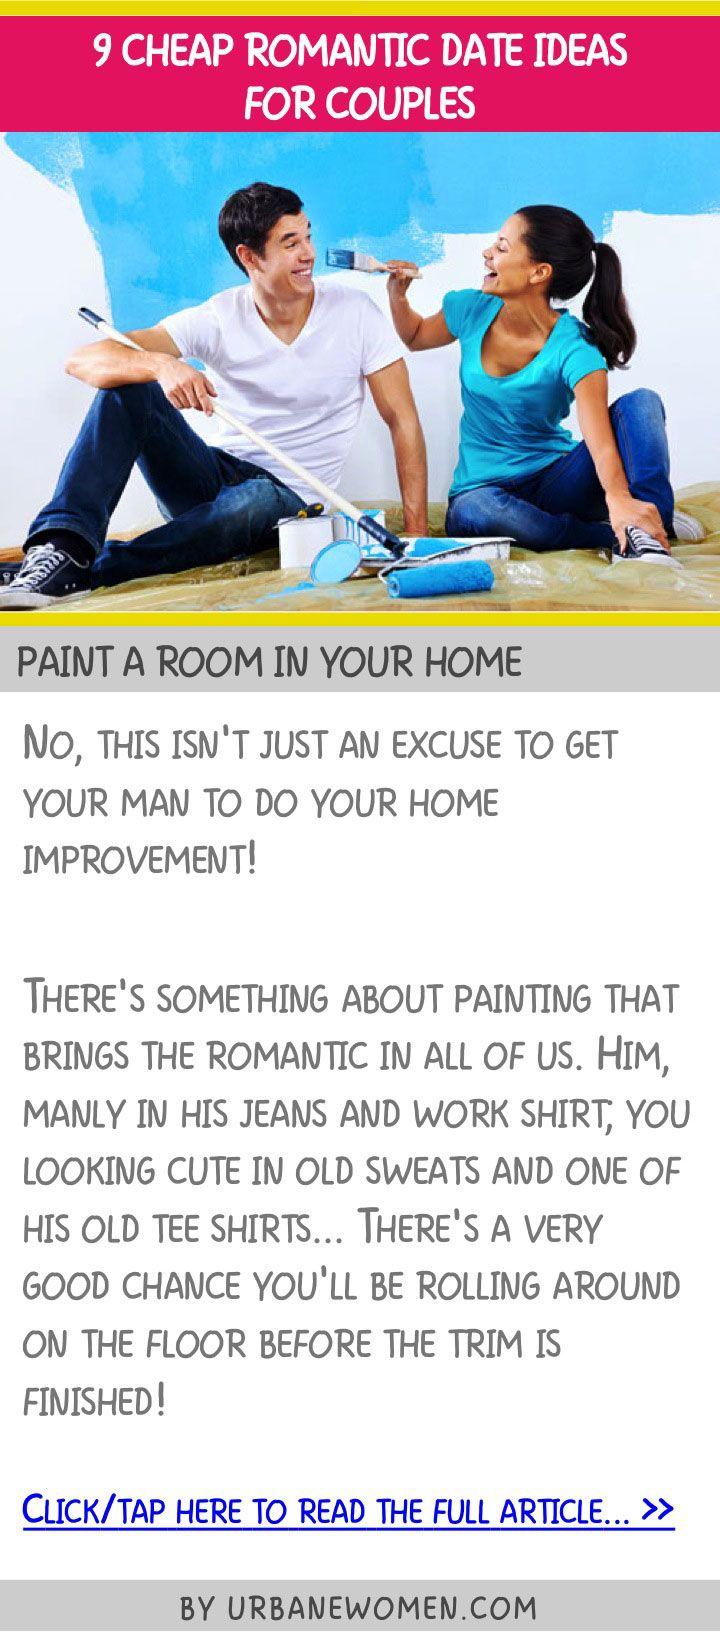 9 cheap romantic date ideas for couples - Paint a room in your home ...